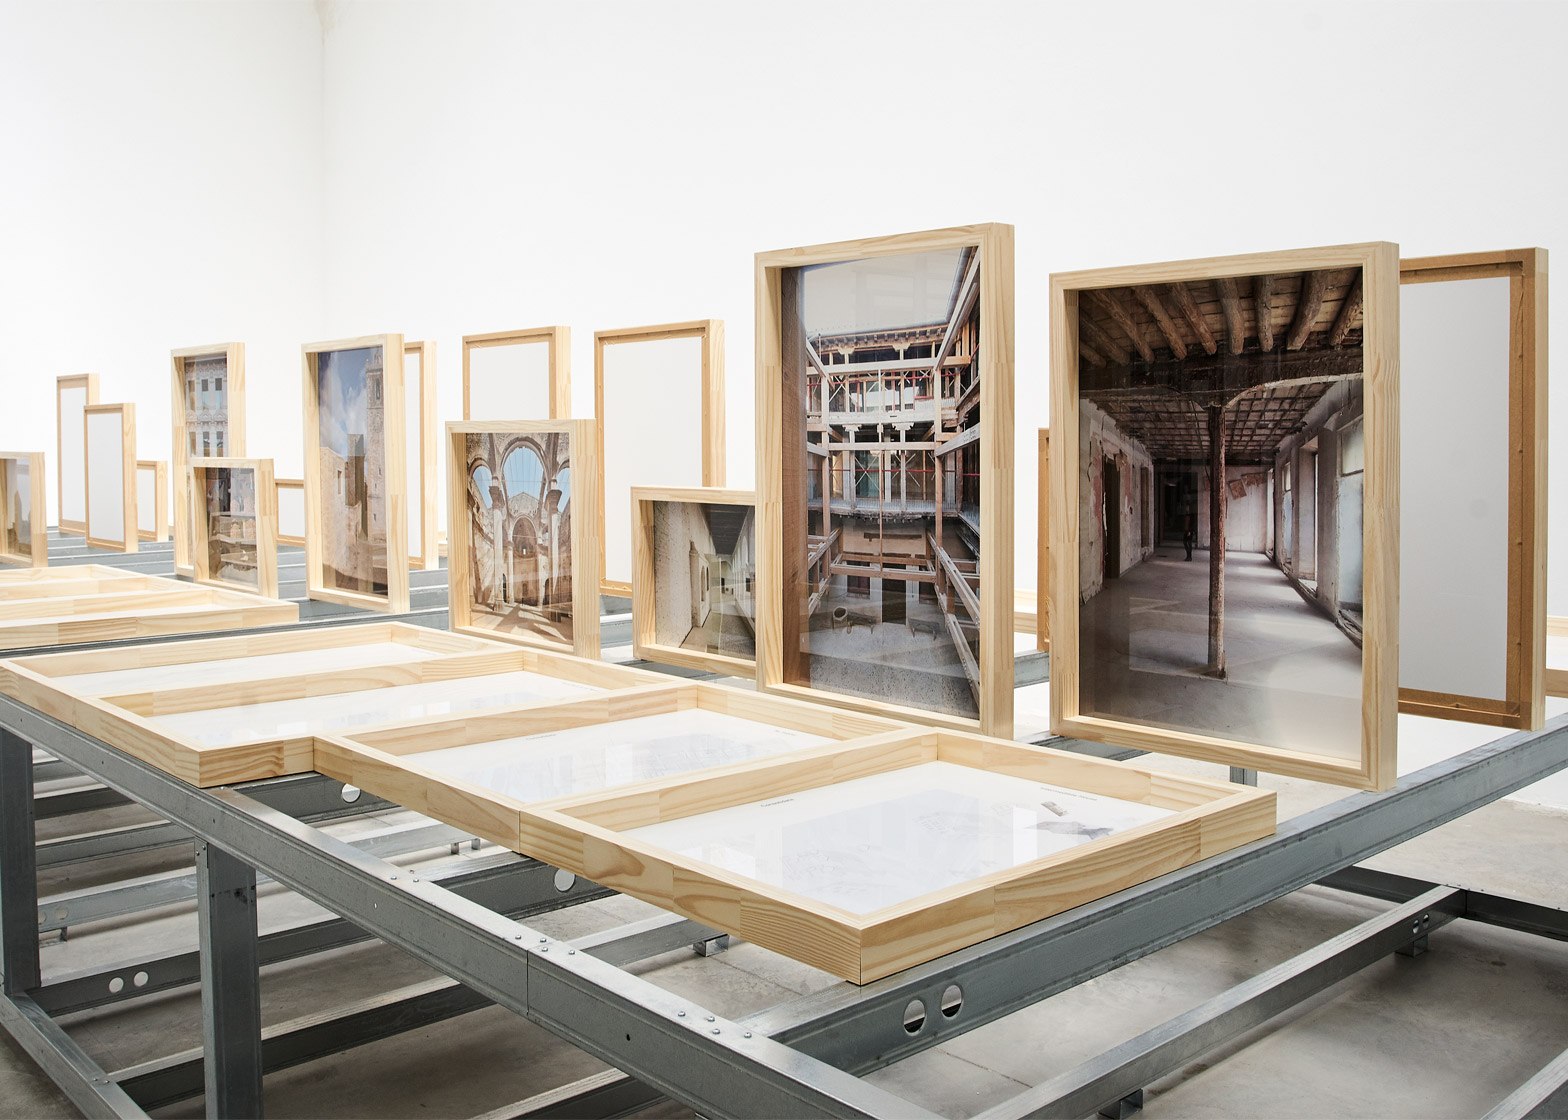 Spanish pavilion at the Venice Architecture Biennale 2016